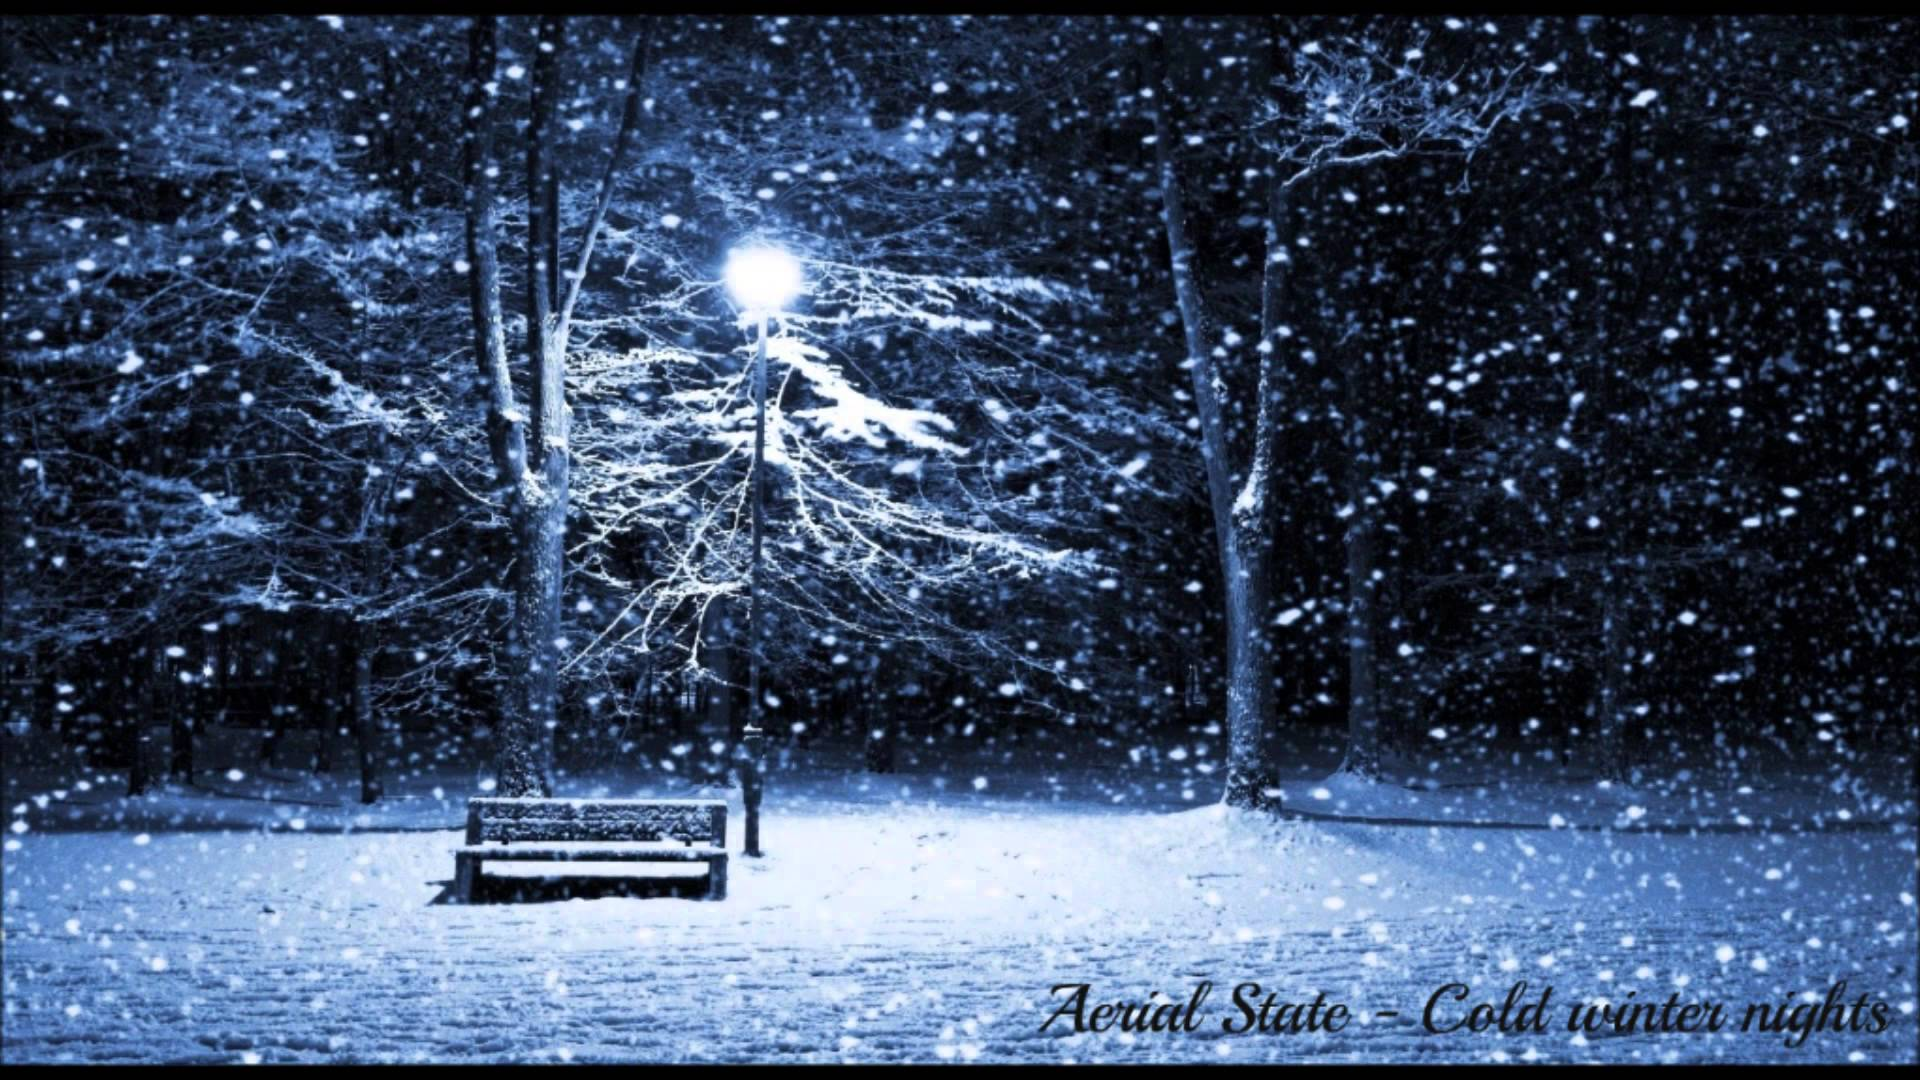 Winter nights photo